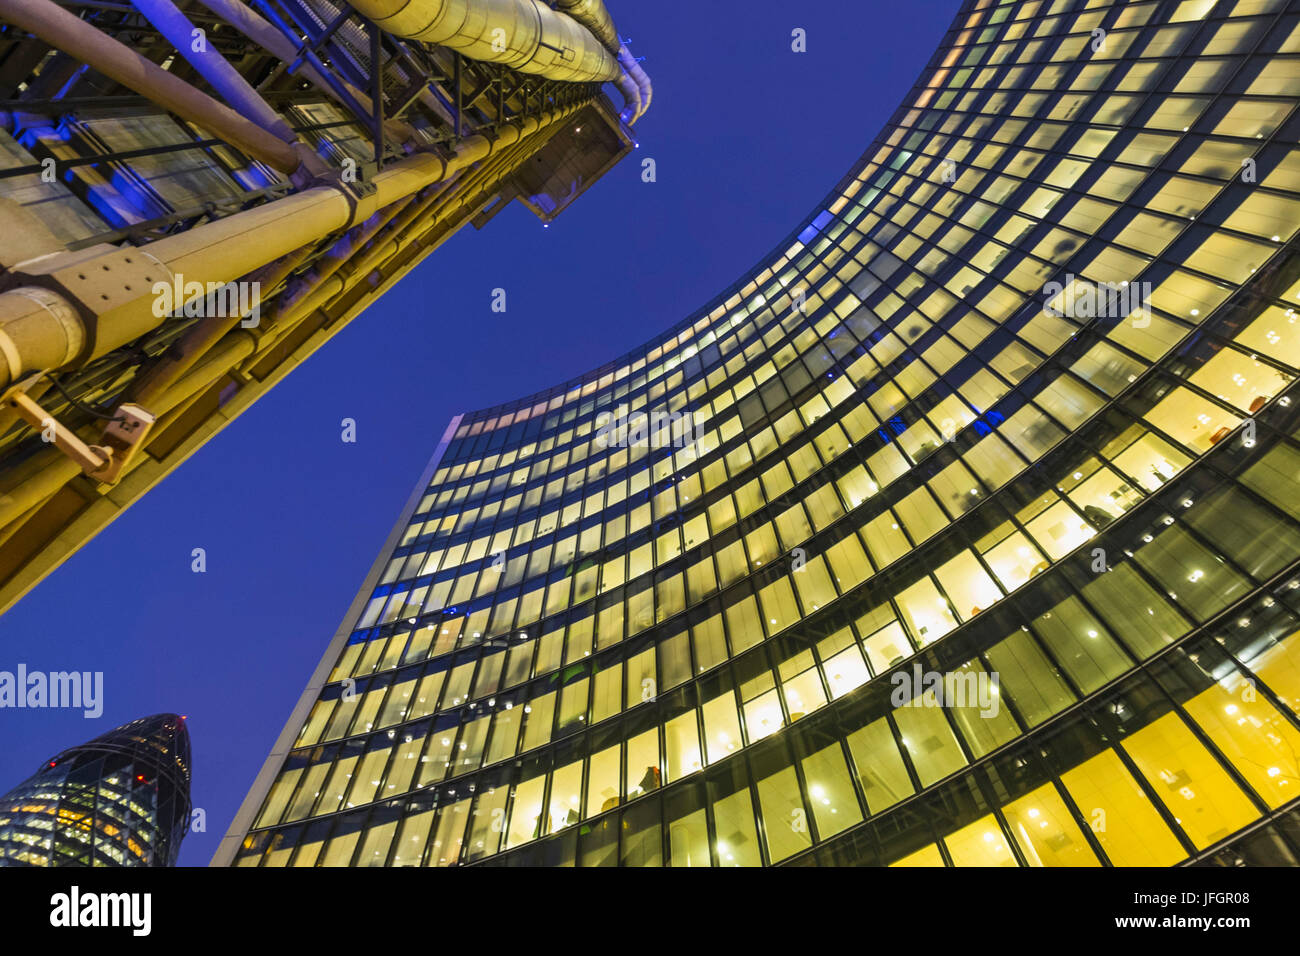 England, London, The City, The Willis Building, Architect Foster+Partners - Stock Image